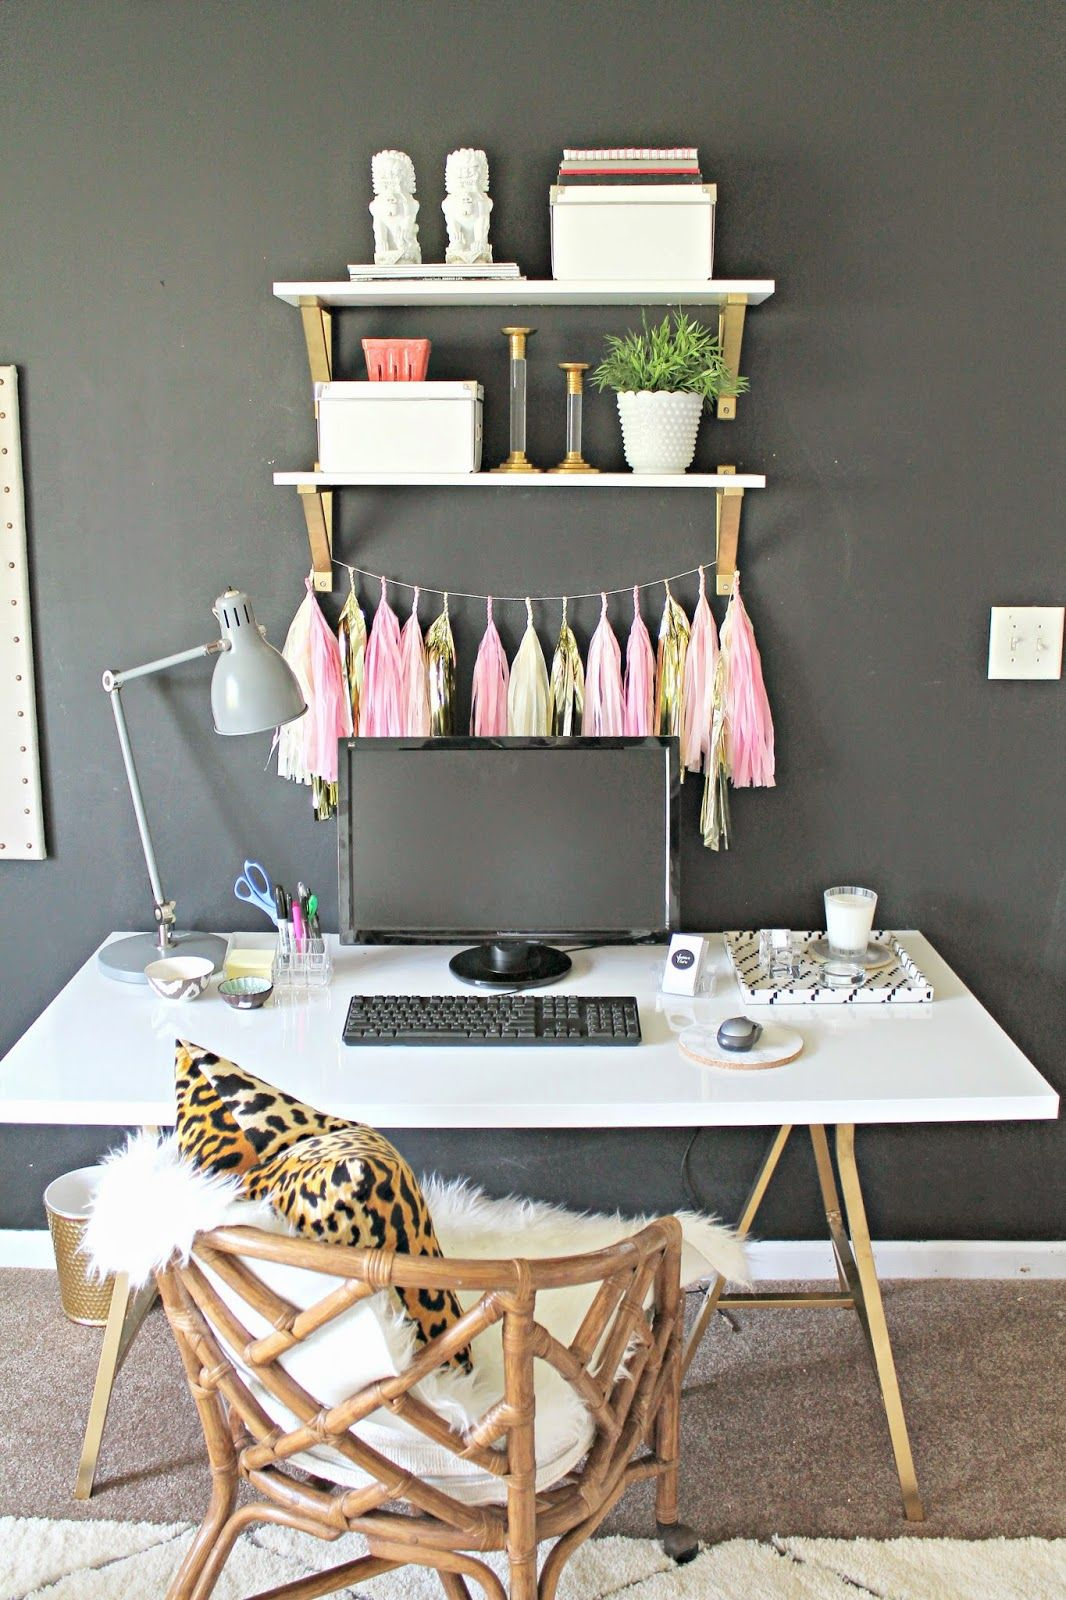 The Best DIY Projects U0026 DIY Ideas And Tutorials: Sewing, Paper Craft, DIY.  Diy Crafts Ideas DIY Ikea Hack Desk And Shelves By Burlap And Lace  Read  More